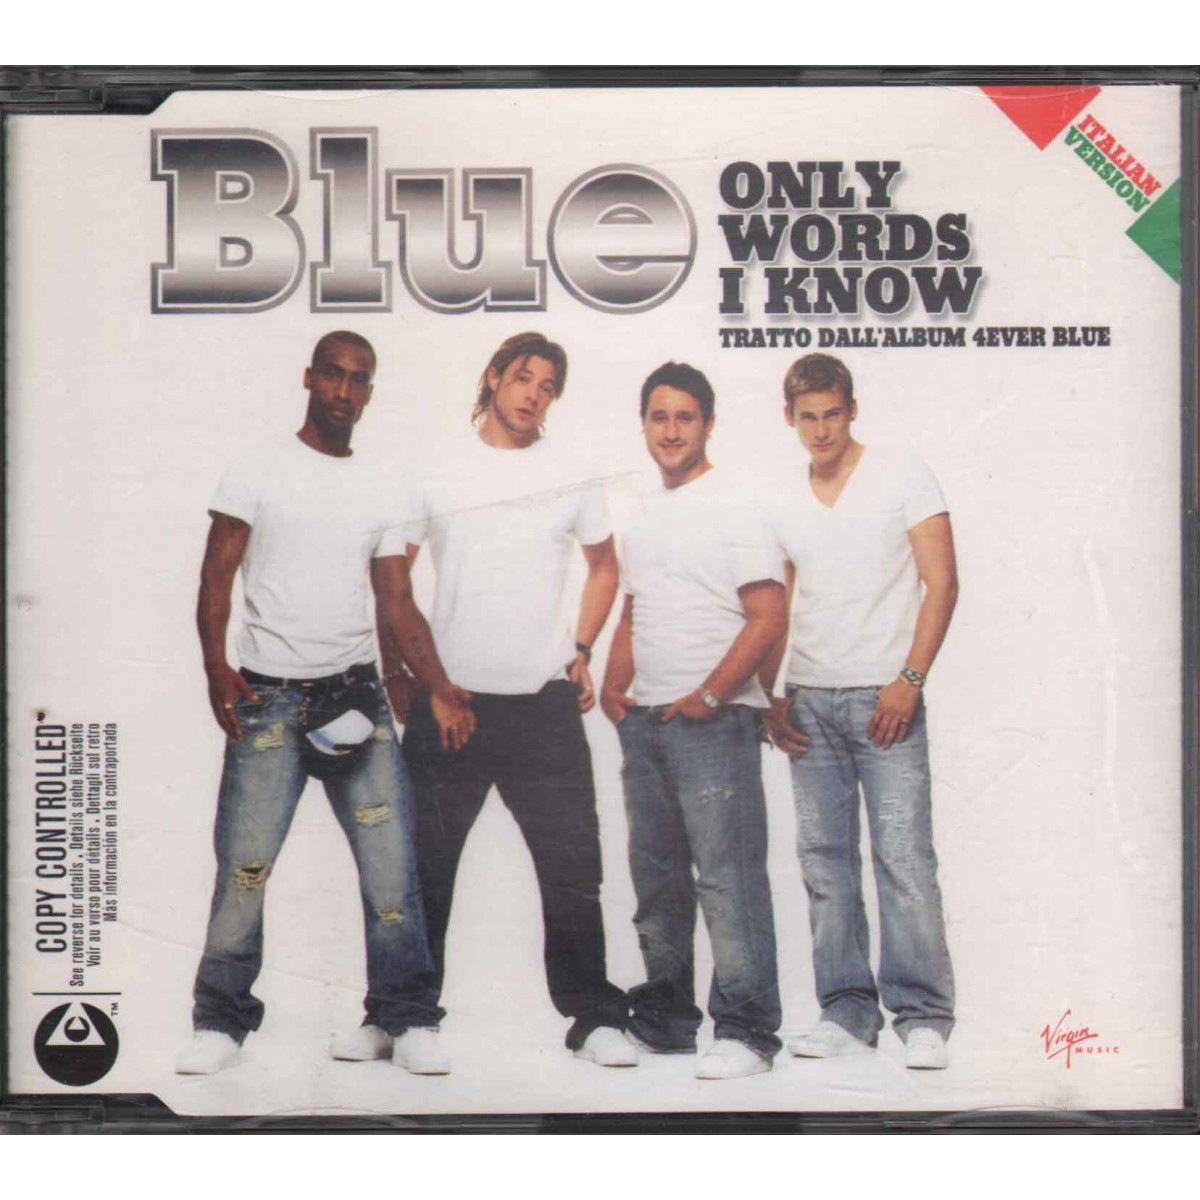 Blue Cd'S Singolo Only Words I Know / Sigillato / Innocent 0724387251120